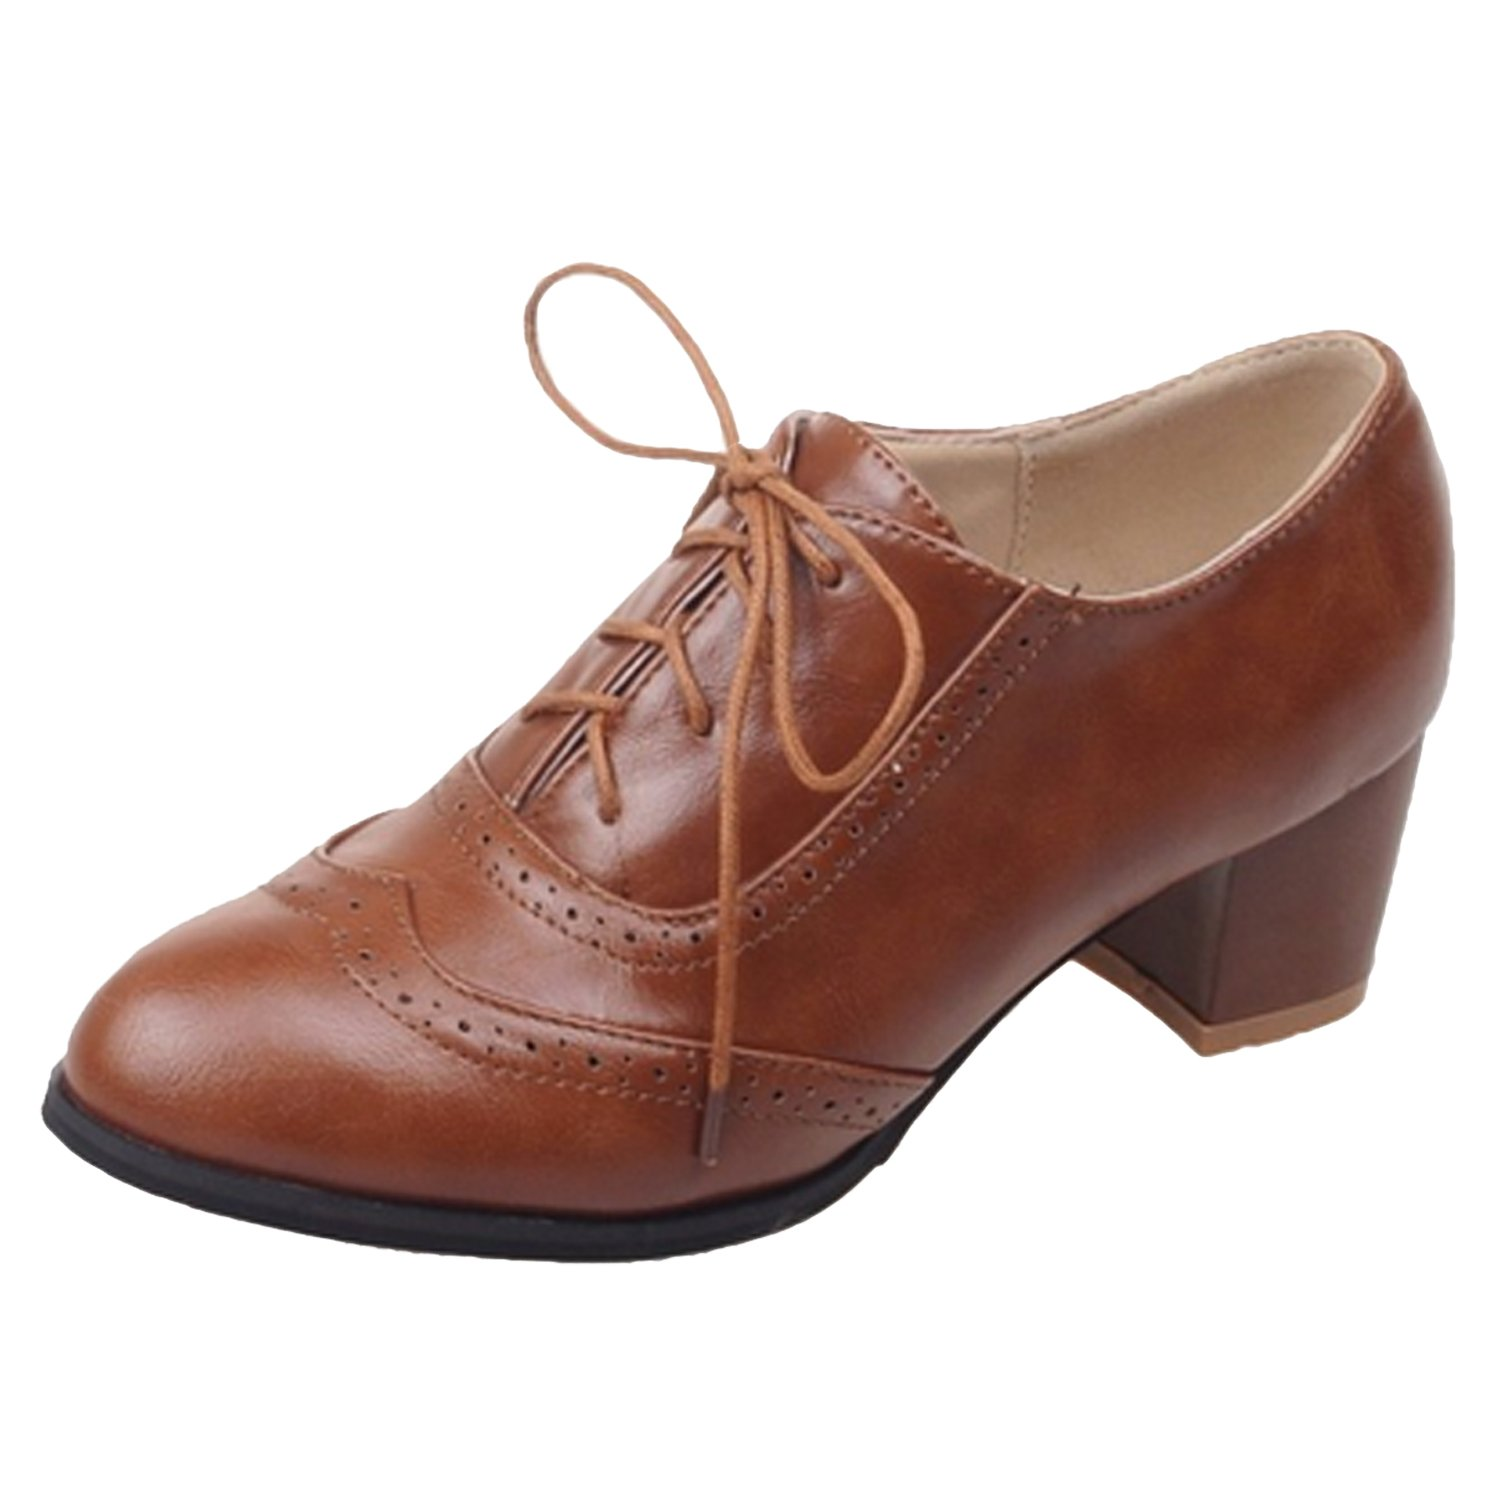 1920s Style Shoes Womens Heel Oxfords £22.99 AT vintagedancer.com